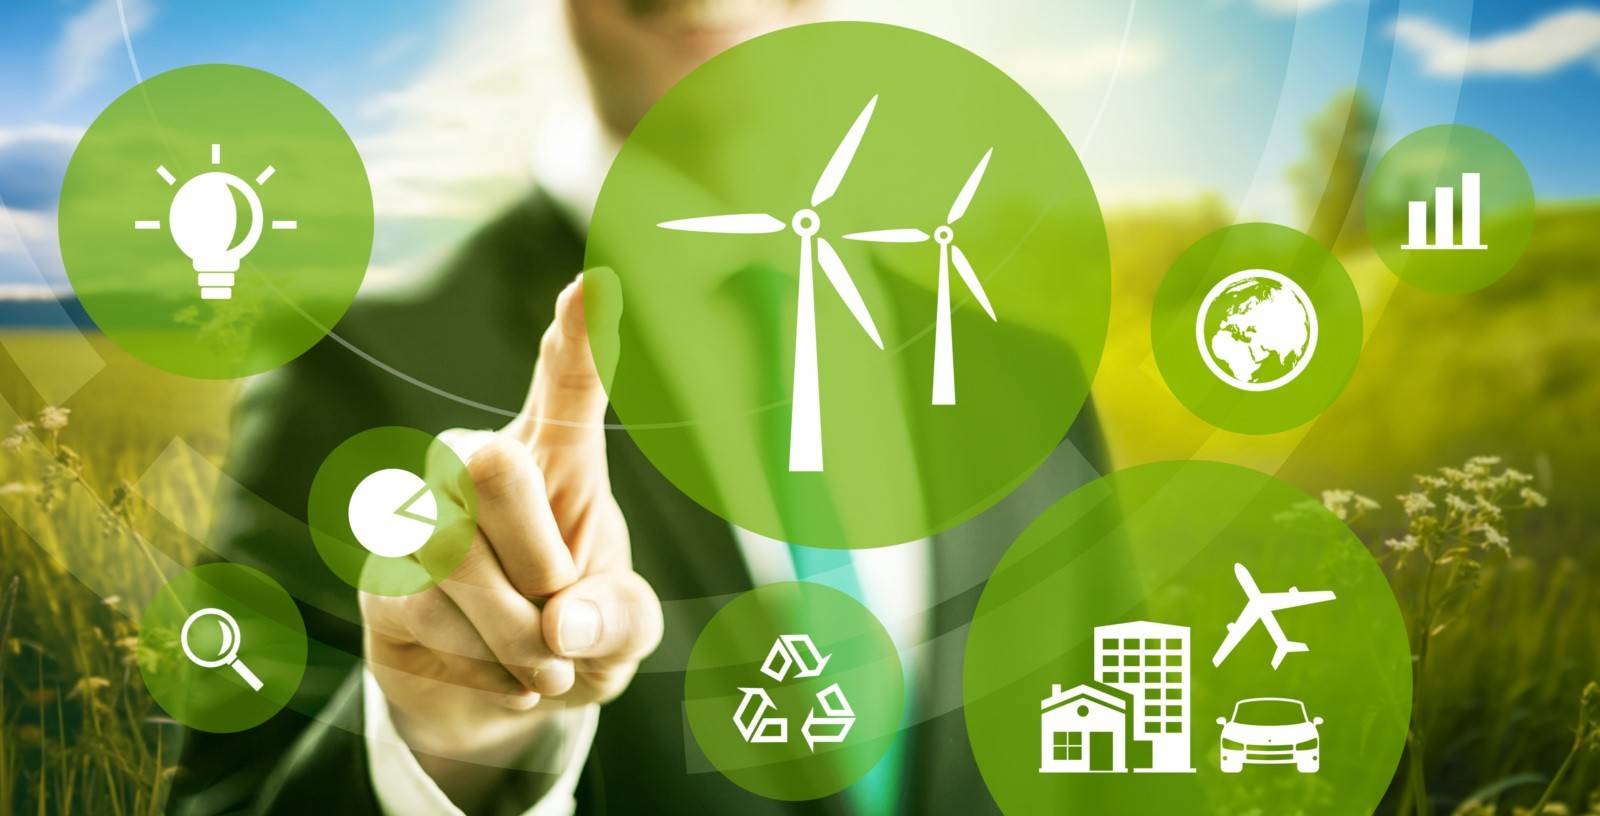 Wind energy and power business model concept